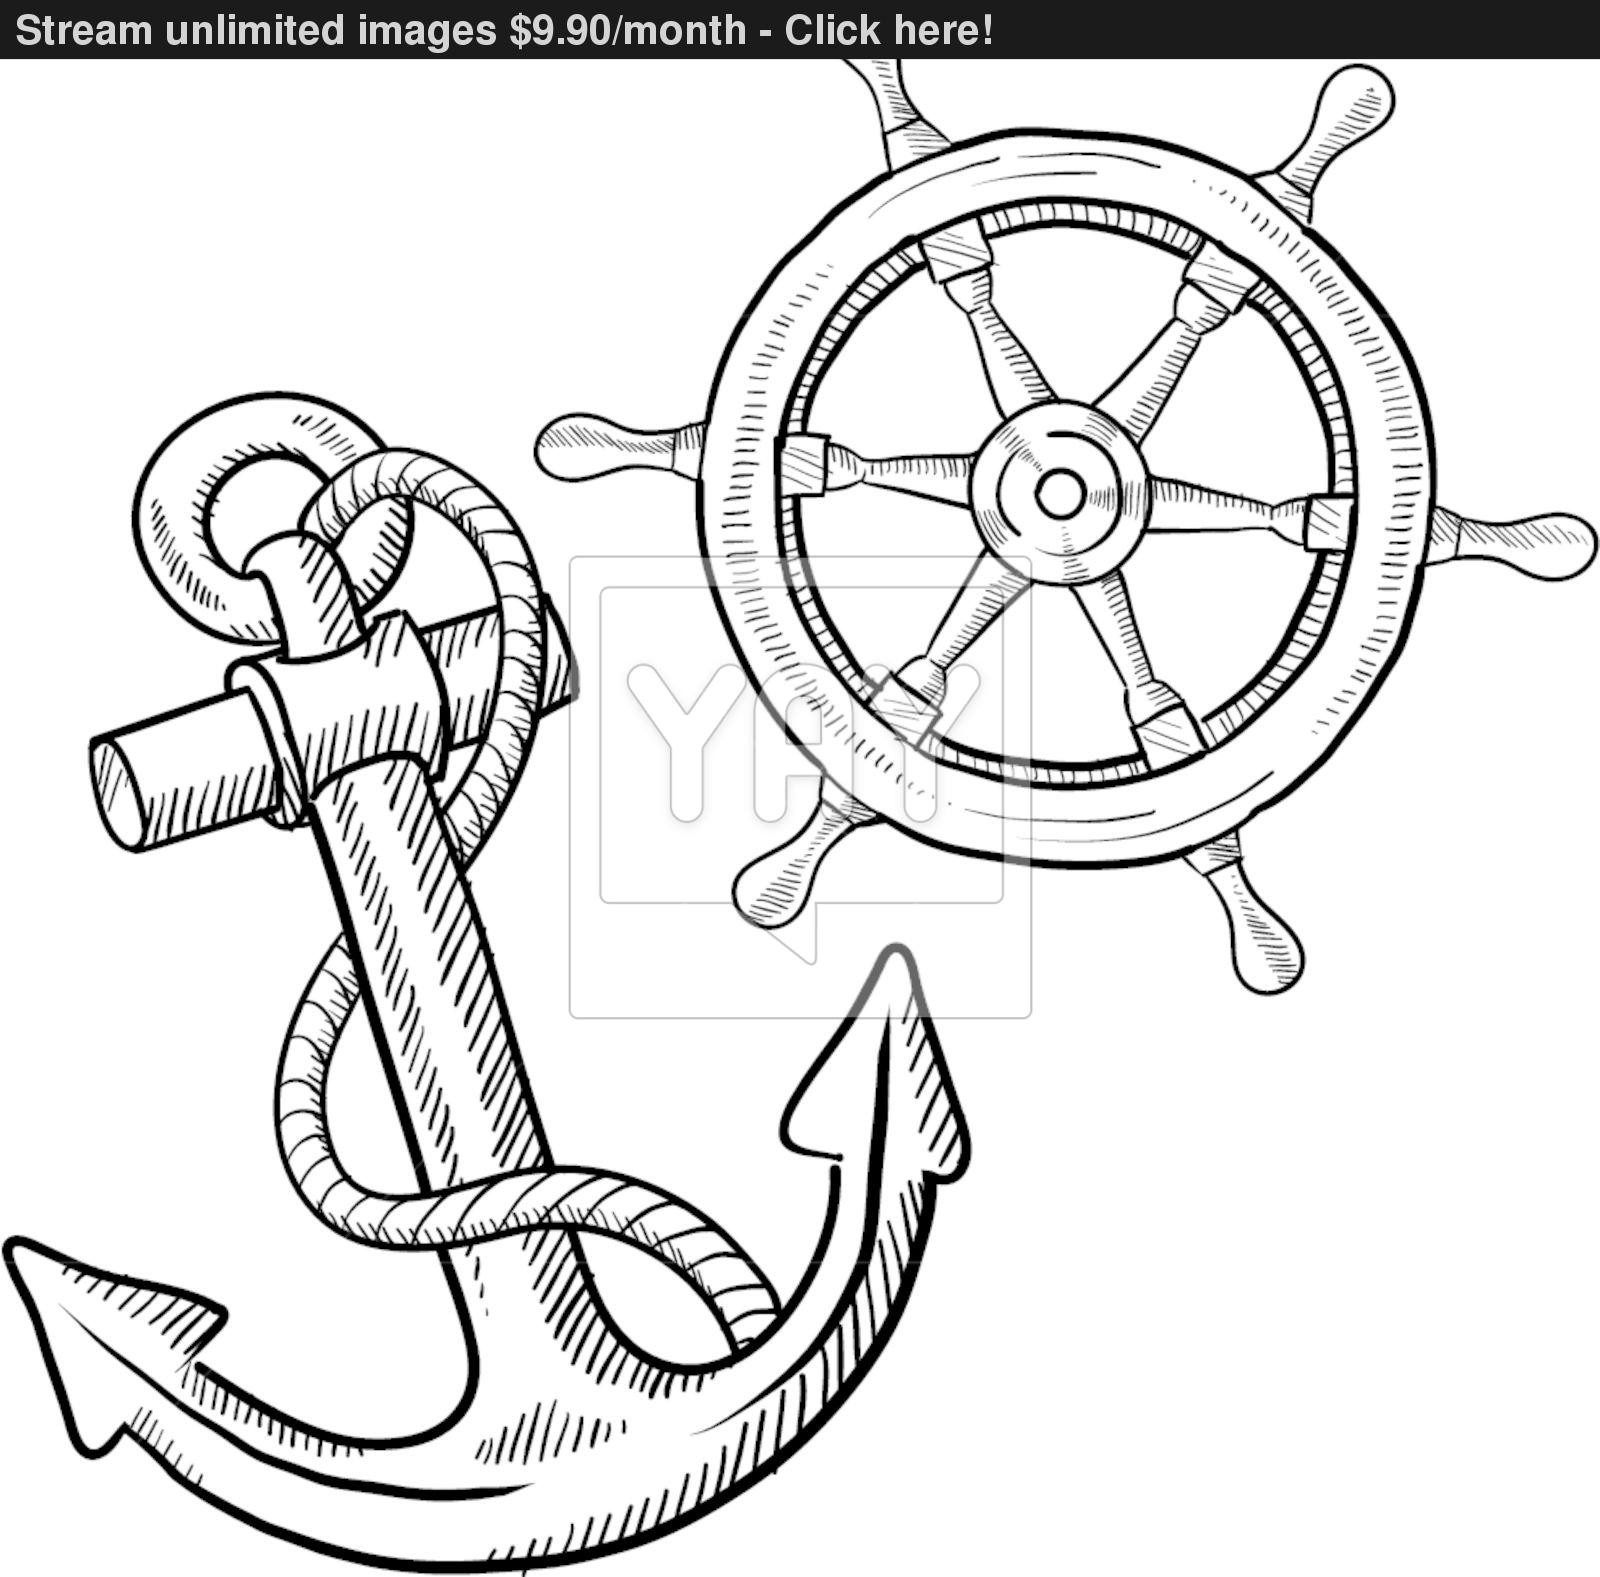 photograph relating to Printable Anchor referred to as No cost Printable Anchor Coloring Internet pages at